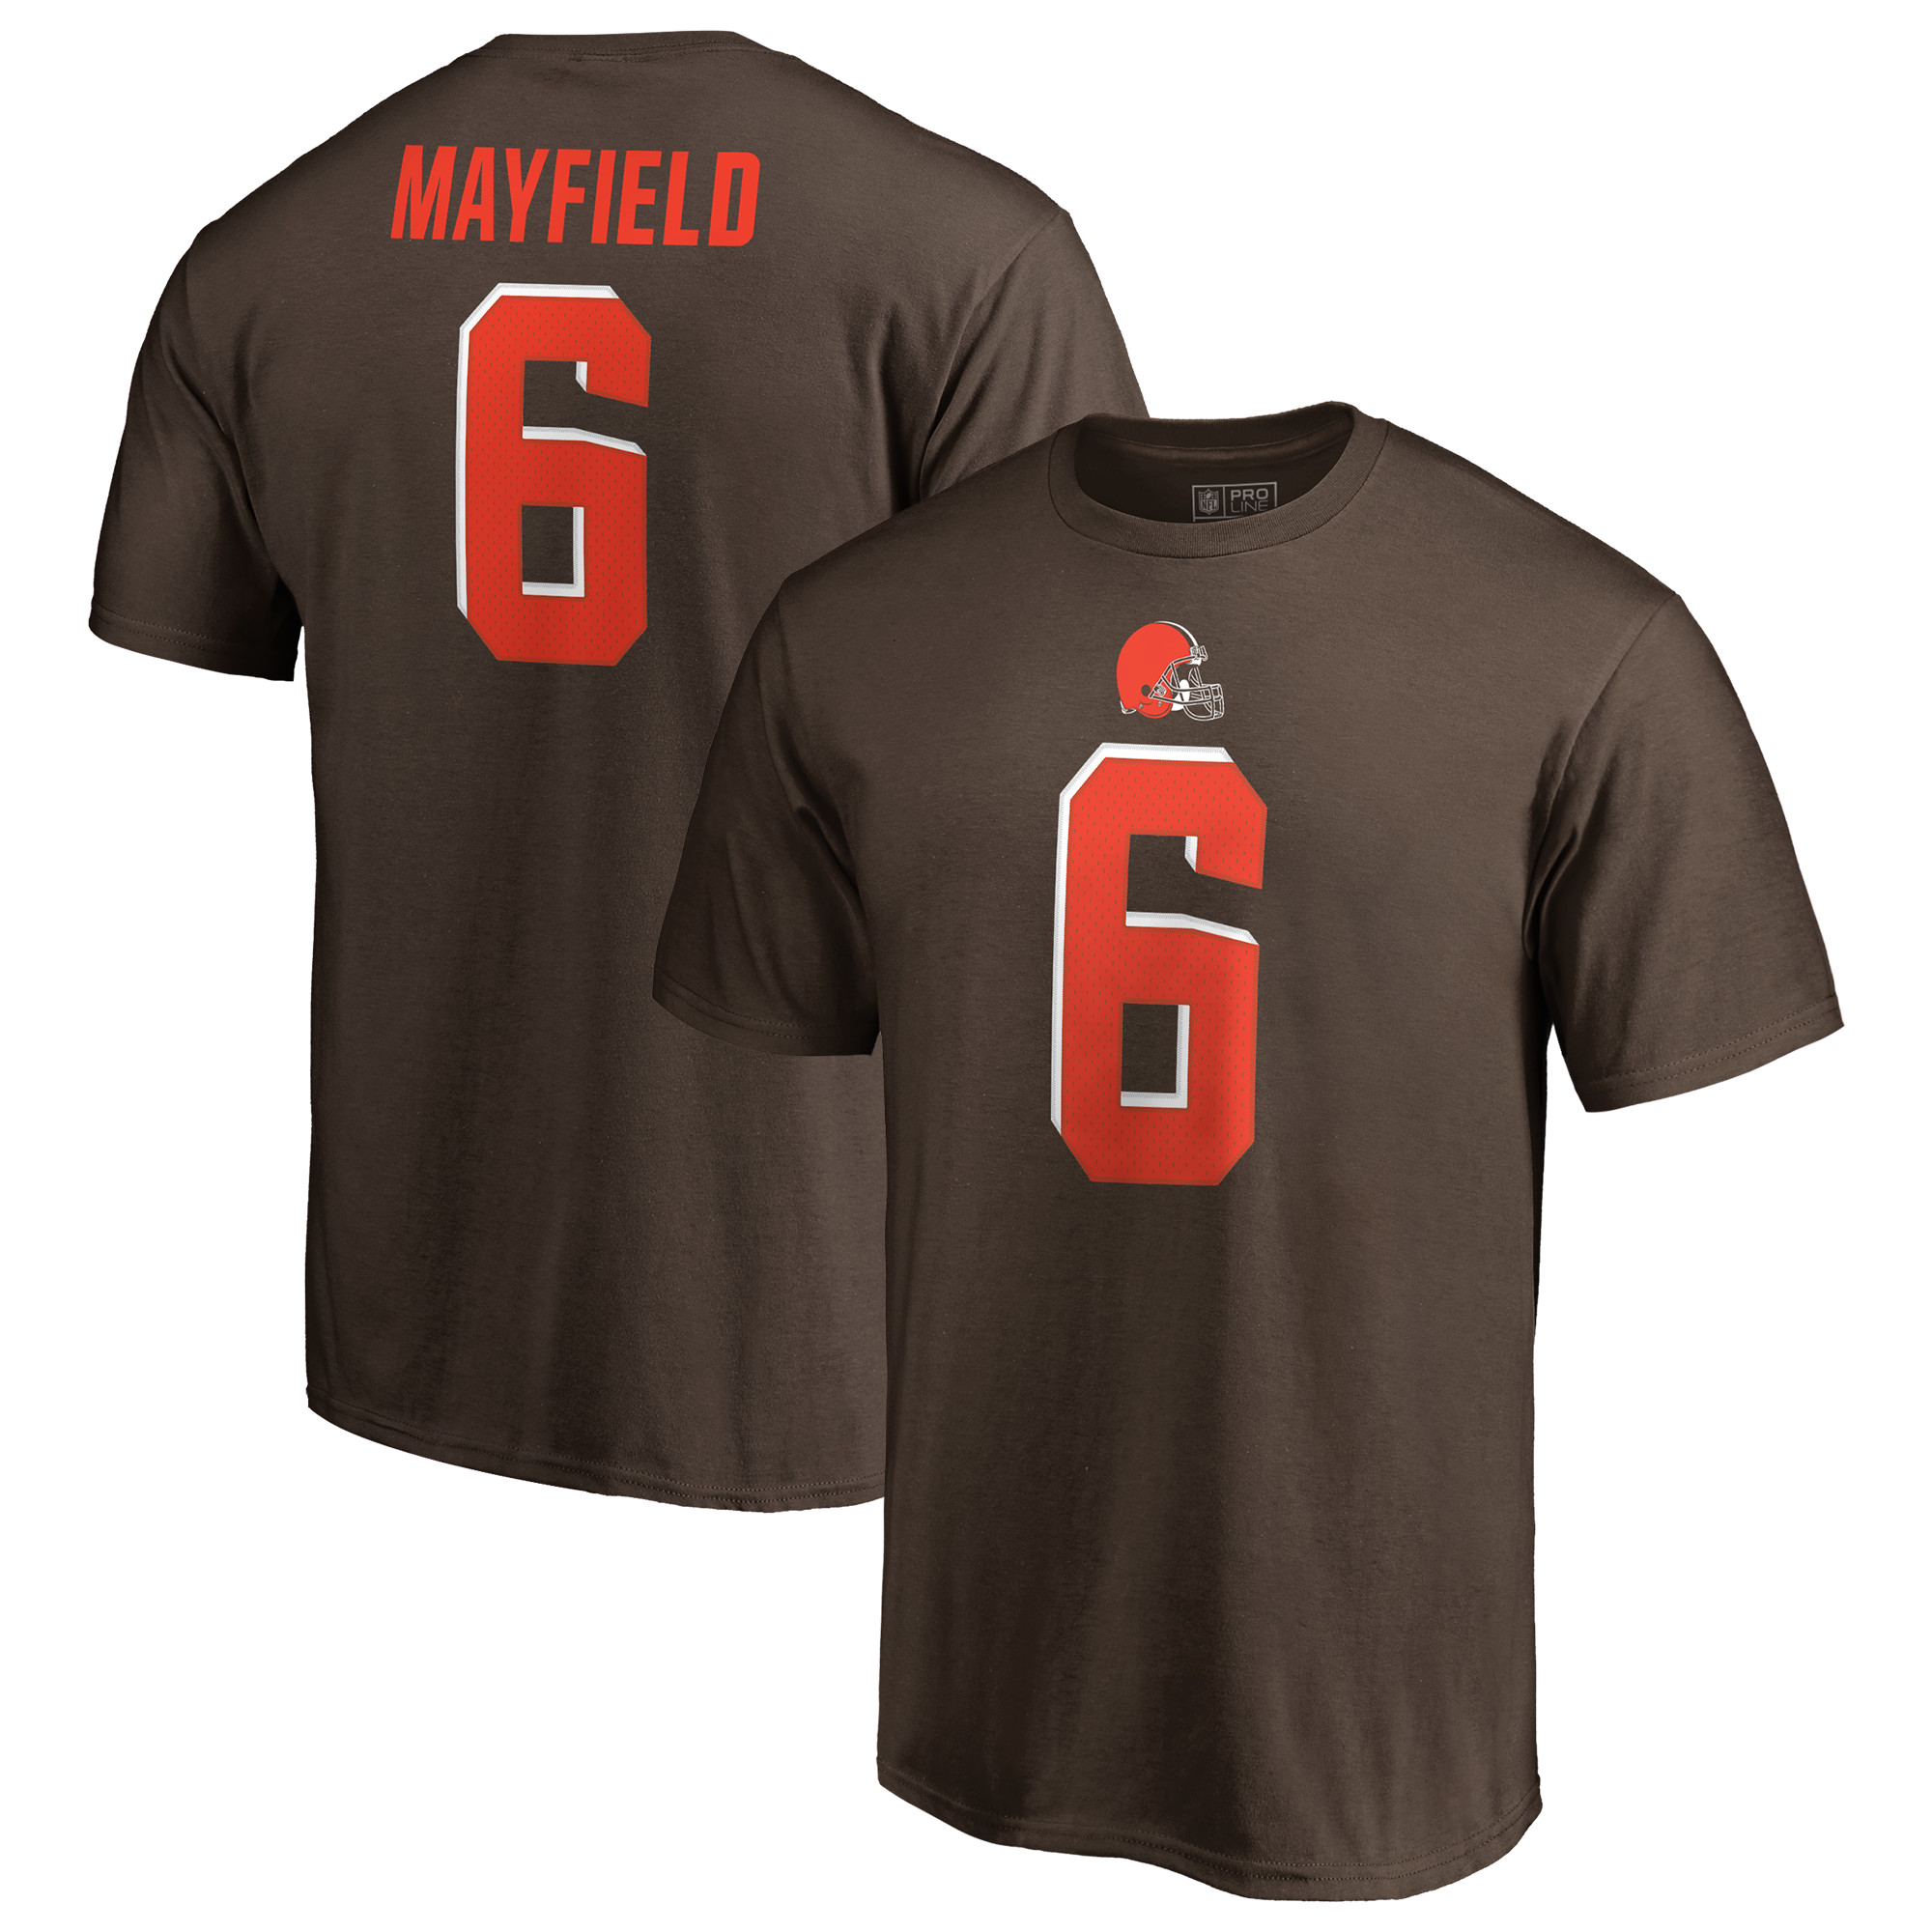 Baker Mayfield Cleveland Browns NFL Pro Line by Fanatics Branded Authentic Stack Name & Number T-Shirt - Brown